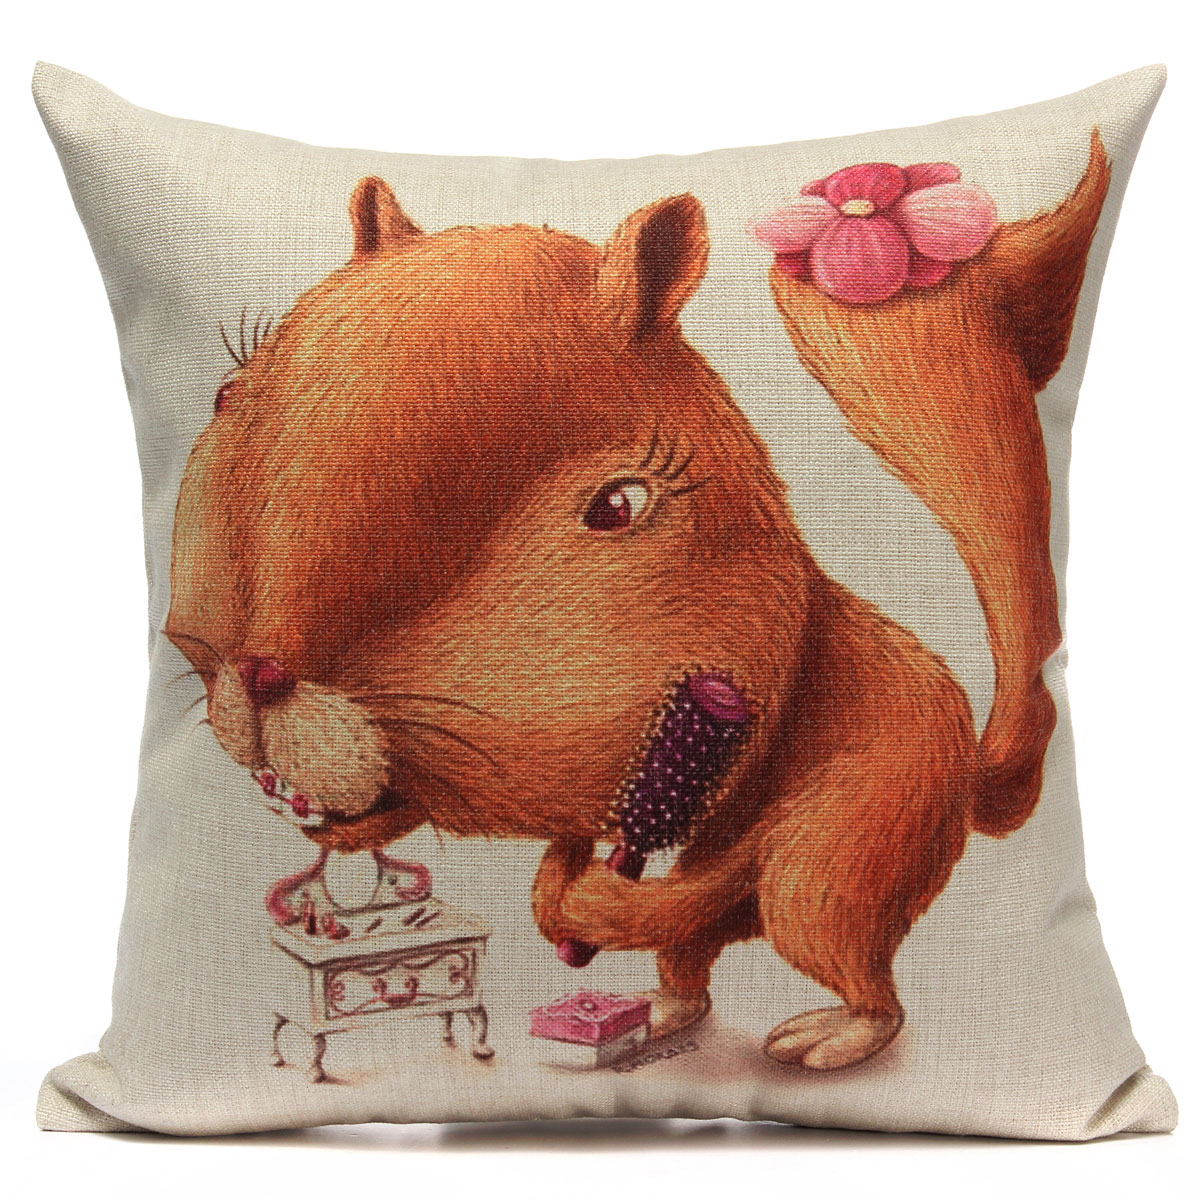 Zoo Animal Pillows : Lovely ZOO Animal Linen Cotton Cushion Cover Throw Pillow Case Home Sofa Decor eBay